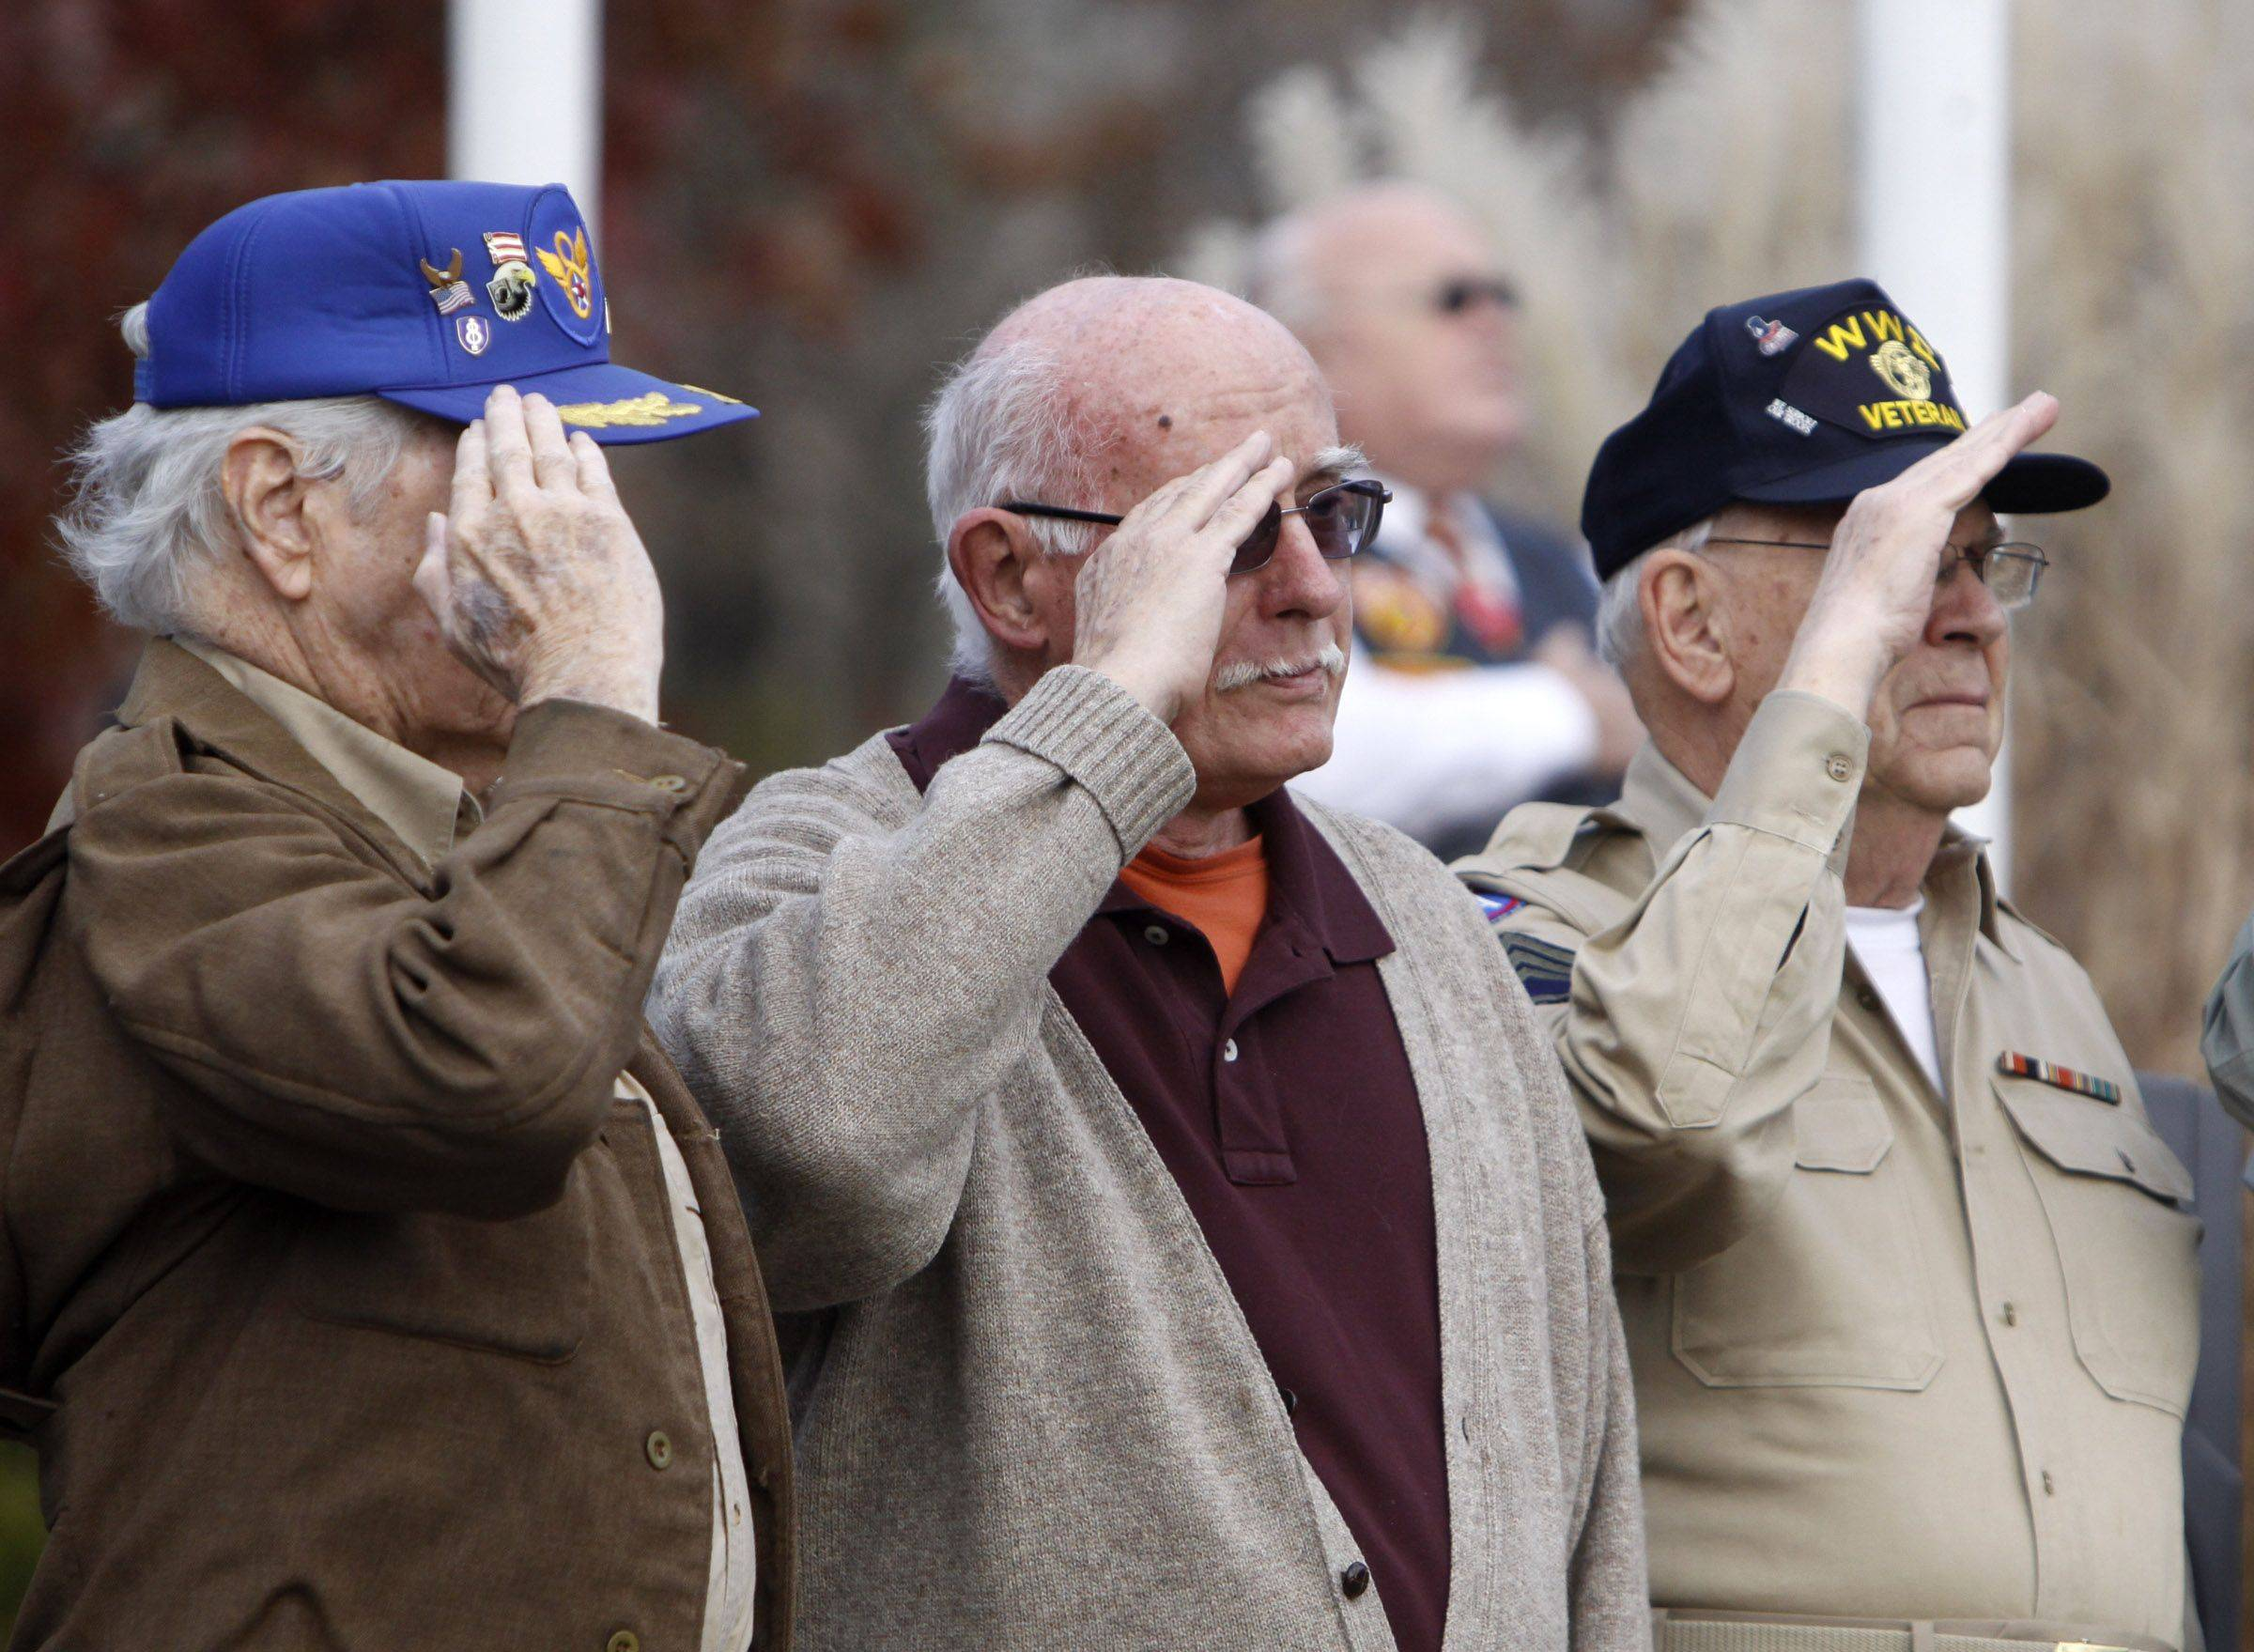 Past veterans stood at attention as the gun salute honored military men and women that have fallen since last year during Naperville's observance of Veterans Day Thursday at Veterans Park in Naperville.